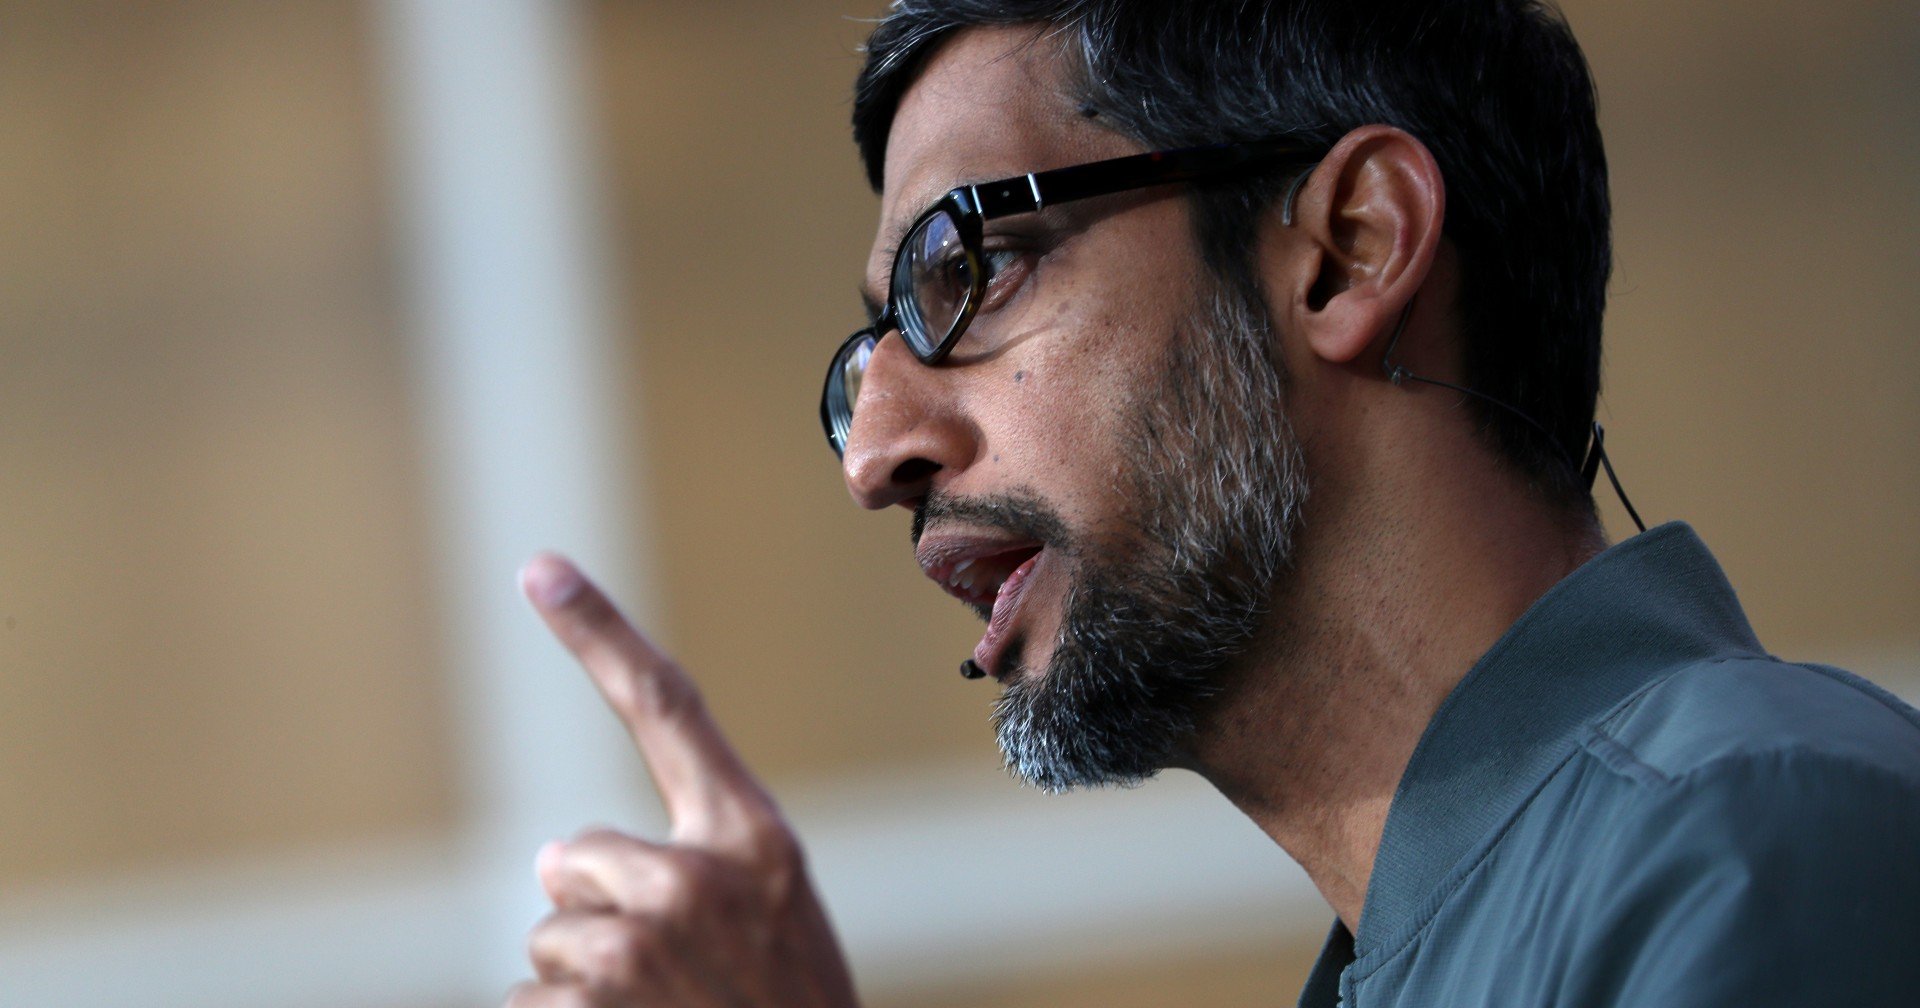 Google CEO weighs in on AI ethicist's controversial departure